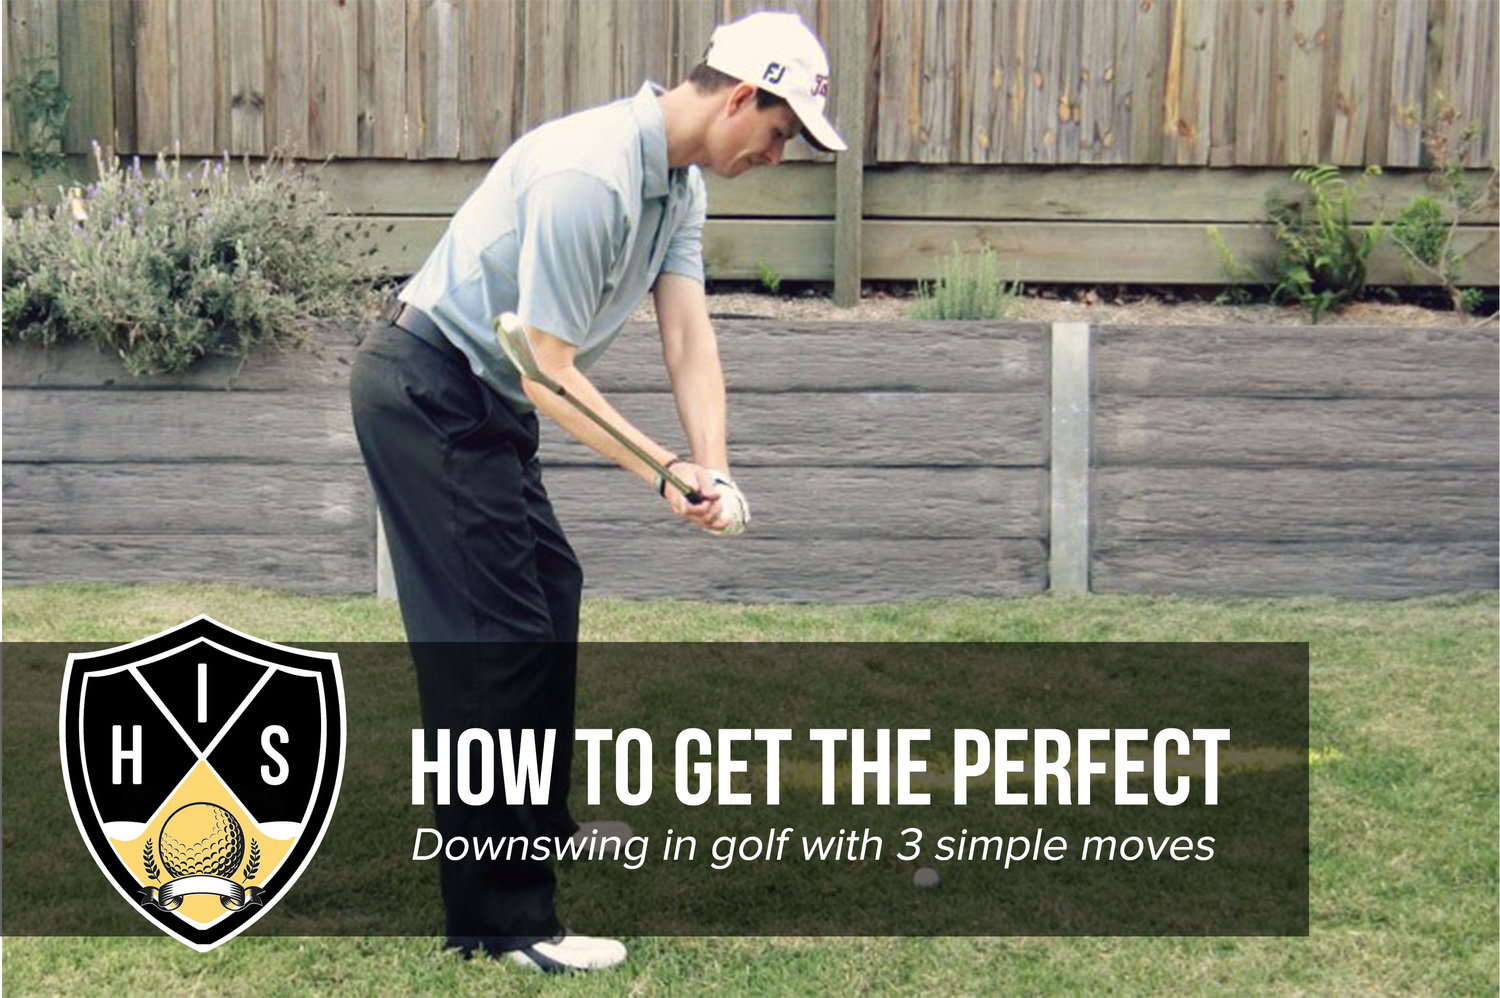 Get the Perfect Downswing in Golf With 3 Simple Moves